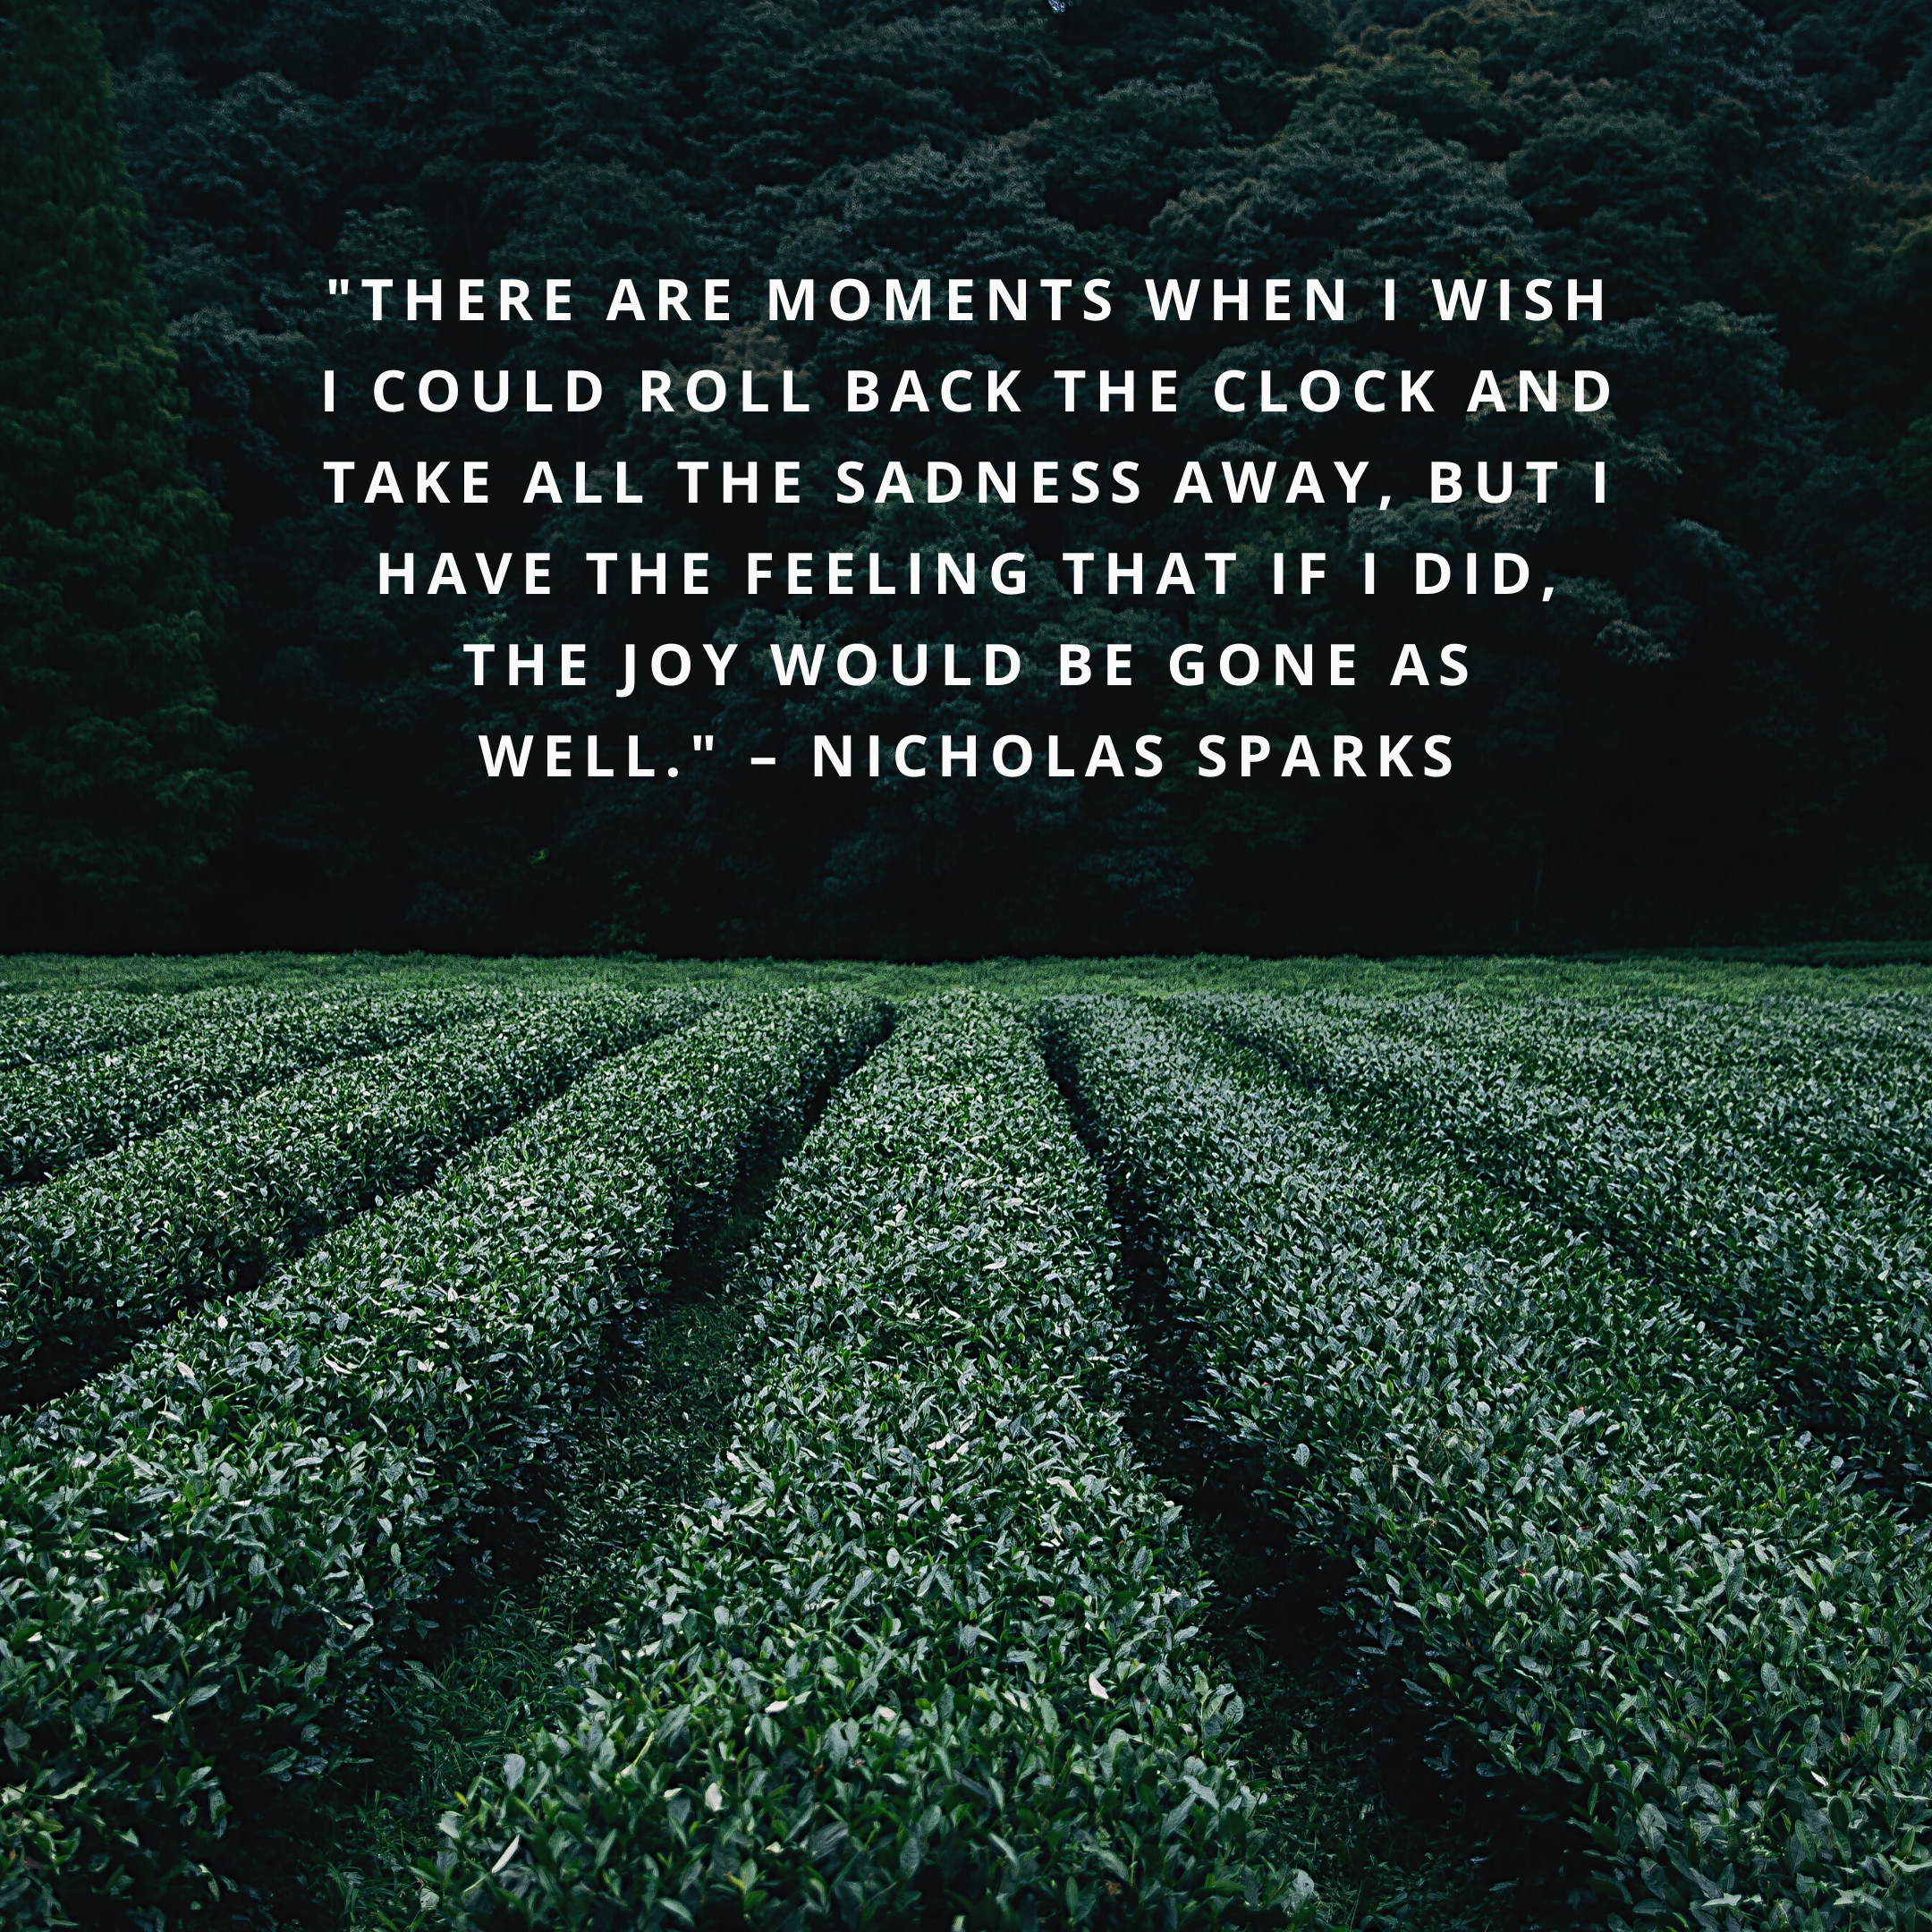 """""""There are moments when I wish I could roll back the clock and take all the sadness away, but I have the feeling that if I did, the joy would be gone as well."""" –Nicholas Sparks"""